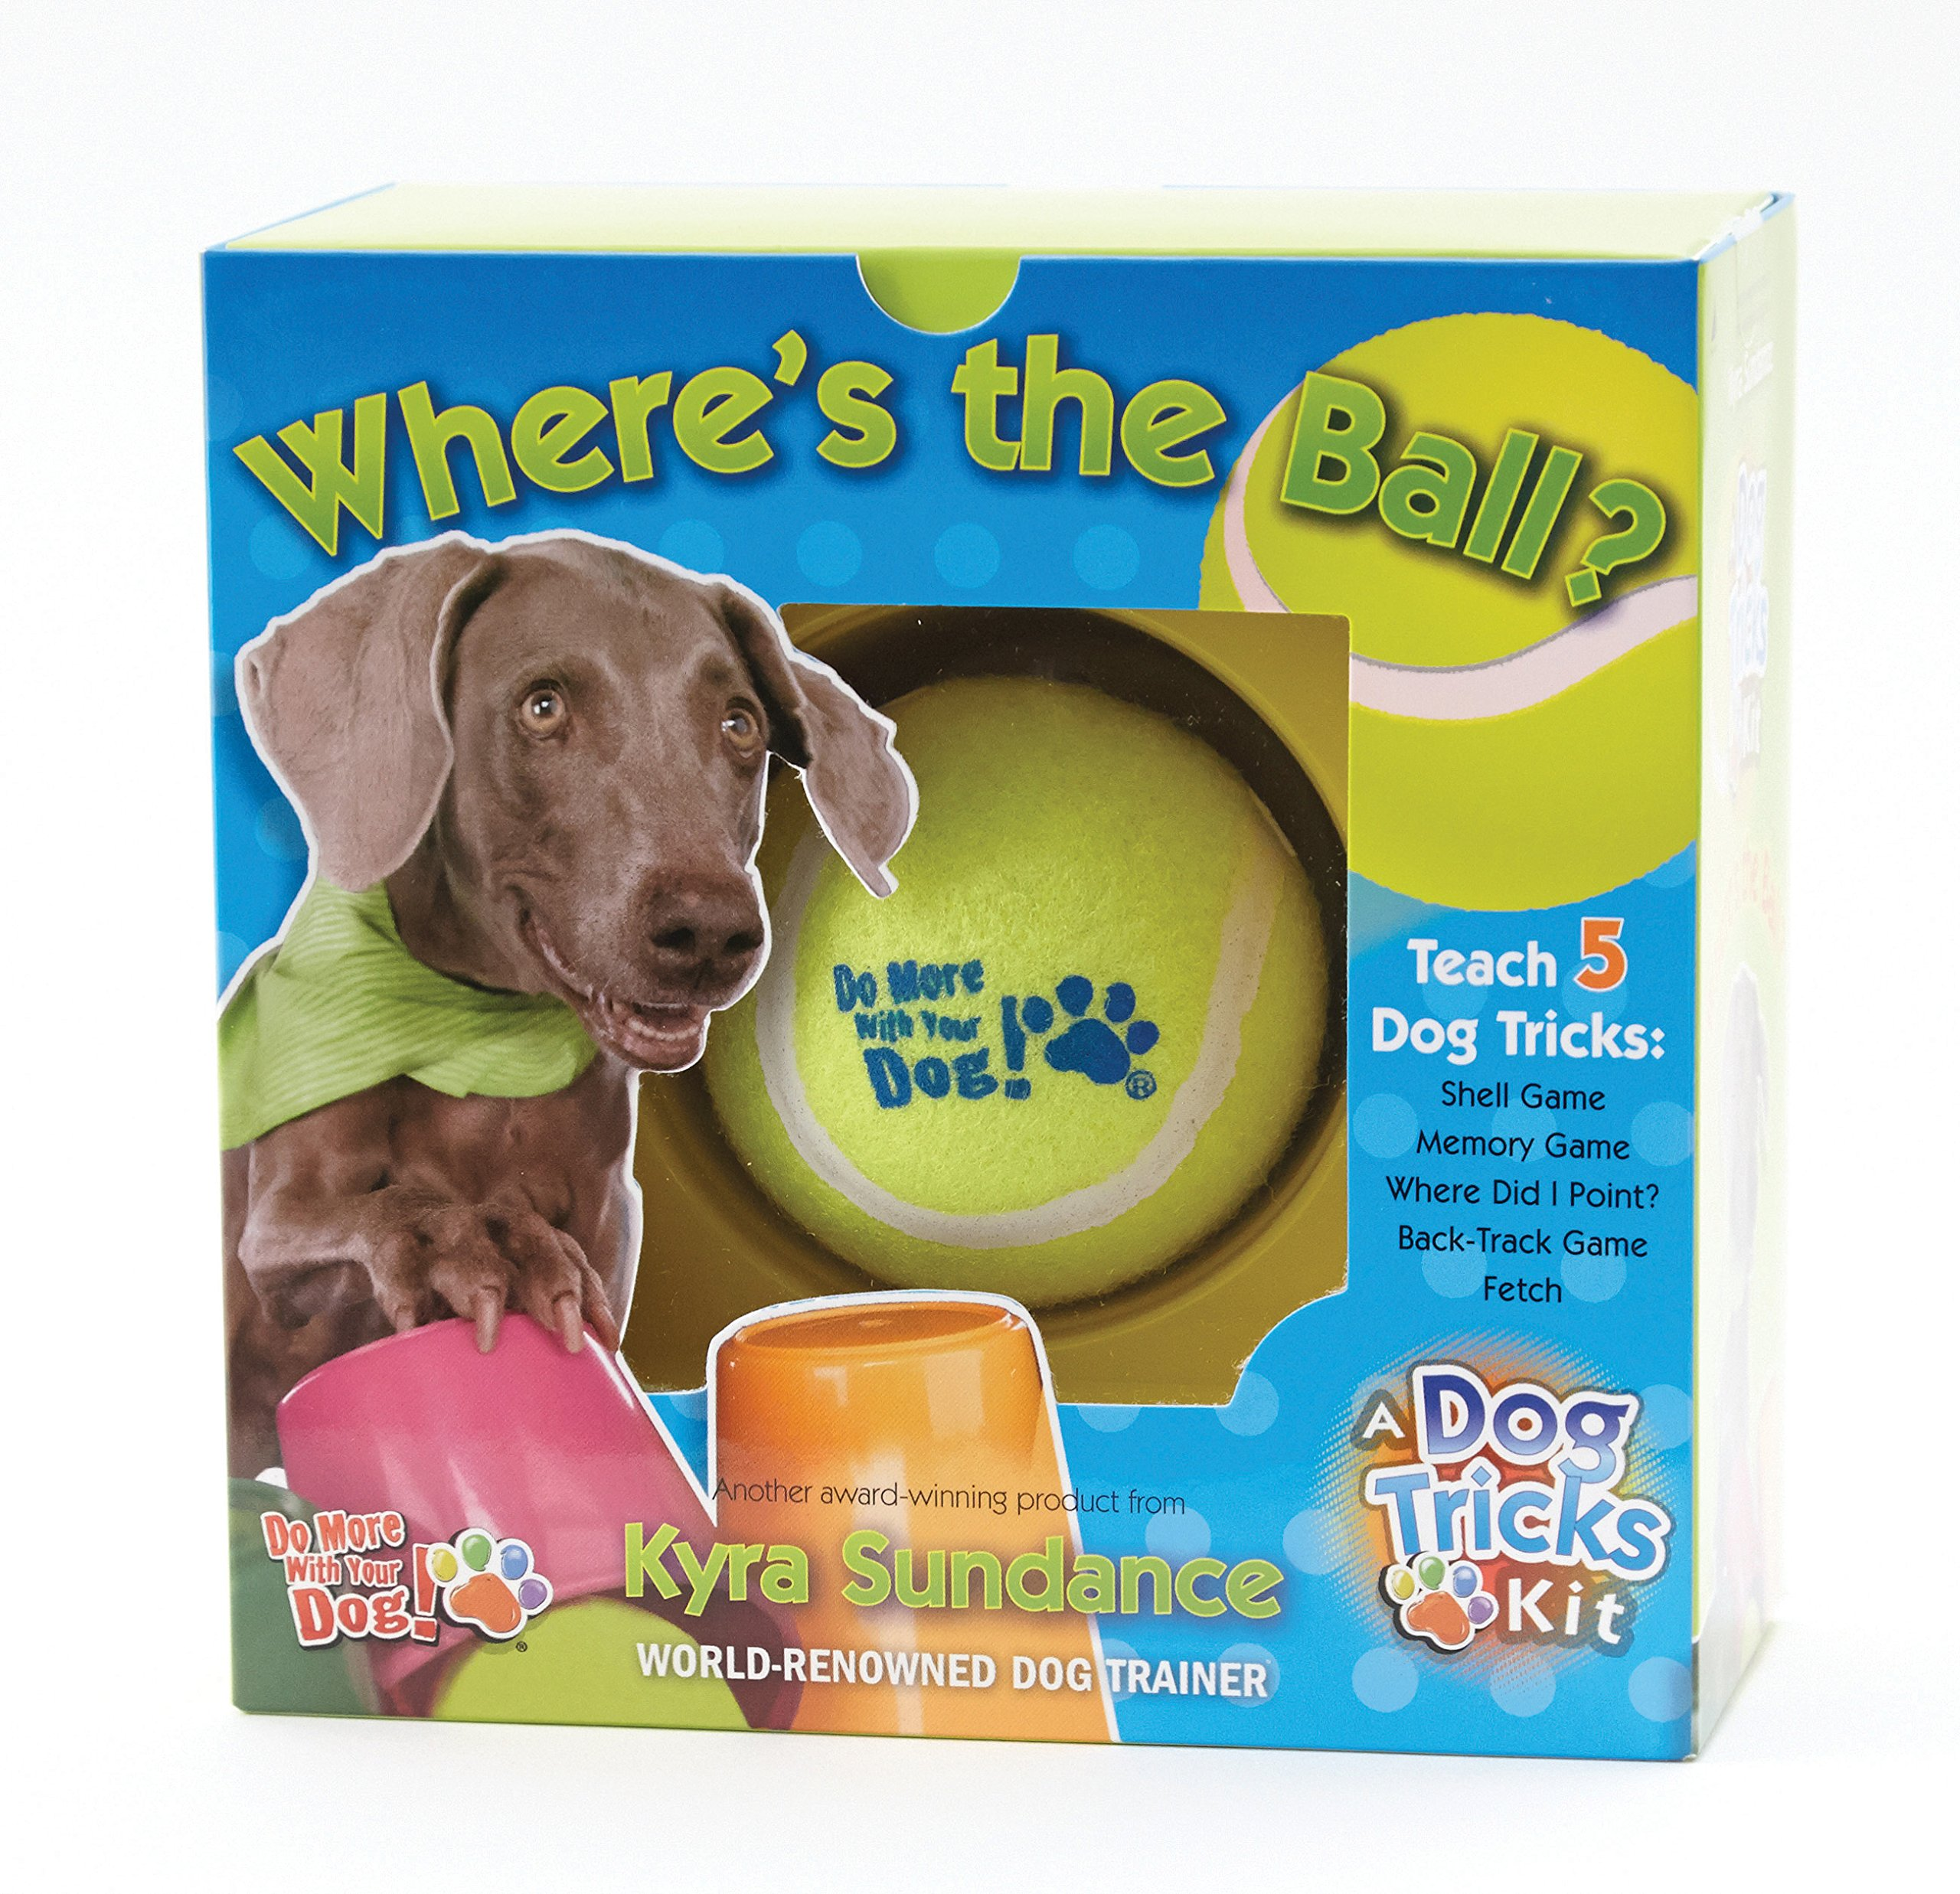 Download Where's the Ball, A Dog Tricks Kit: Engage, Challenge, and Bond with Your Dog ebook